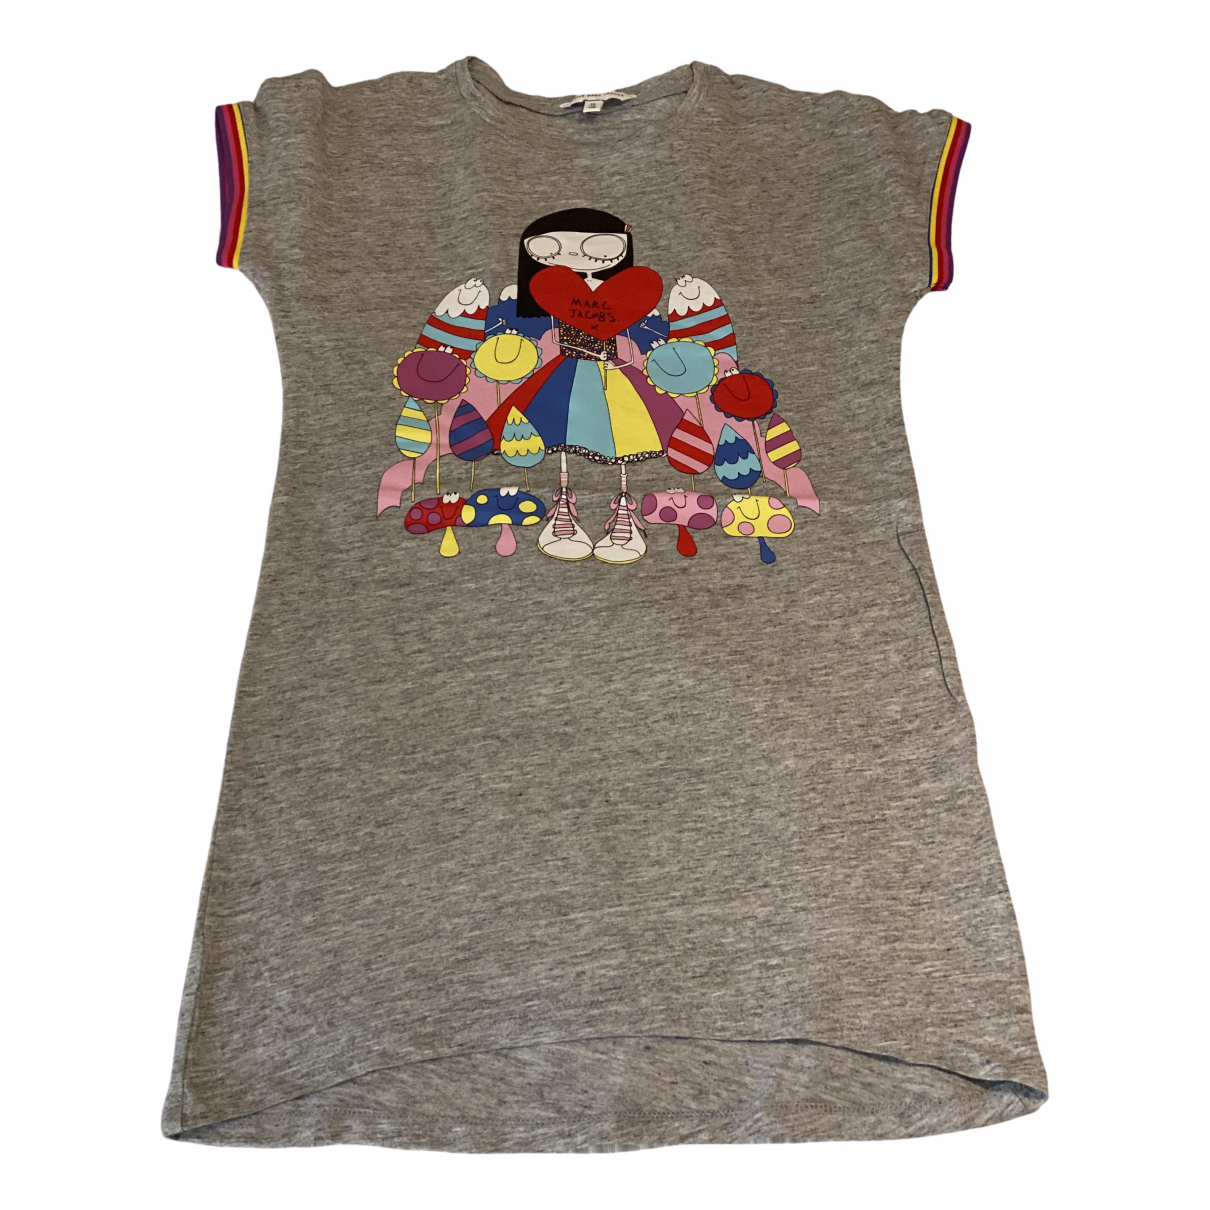 Little Marc Jacobs \N Grey Cotton dress for Kids 10 years - until 56 inches UK